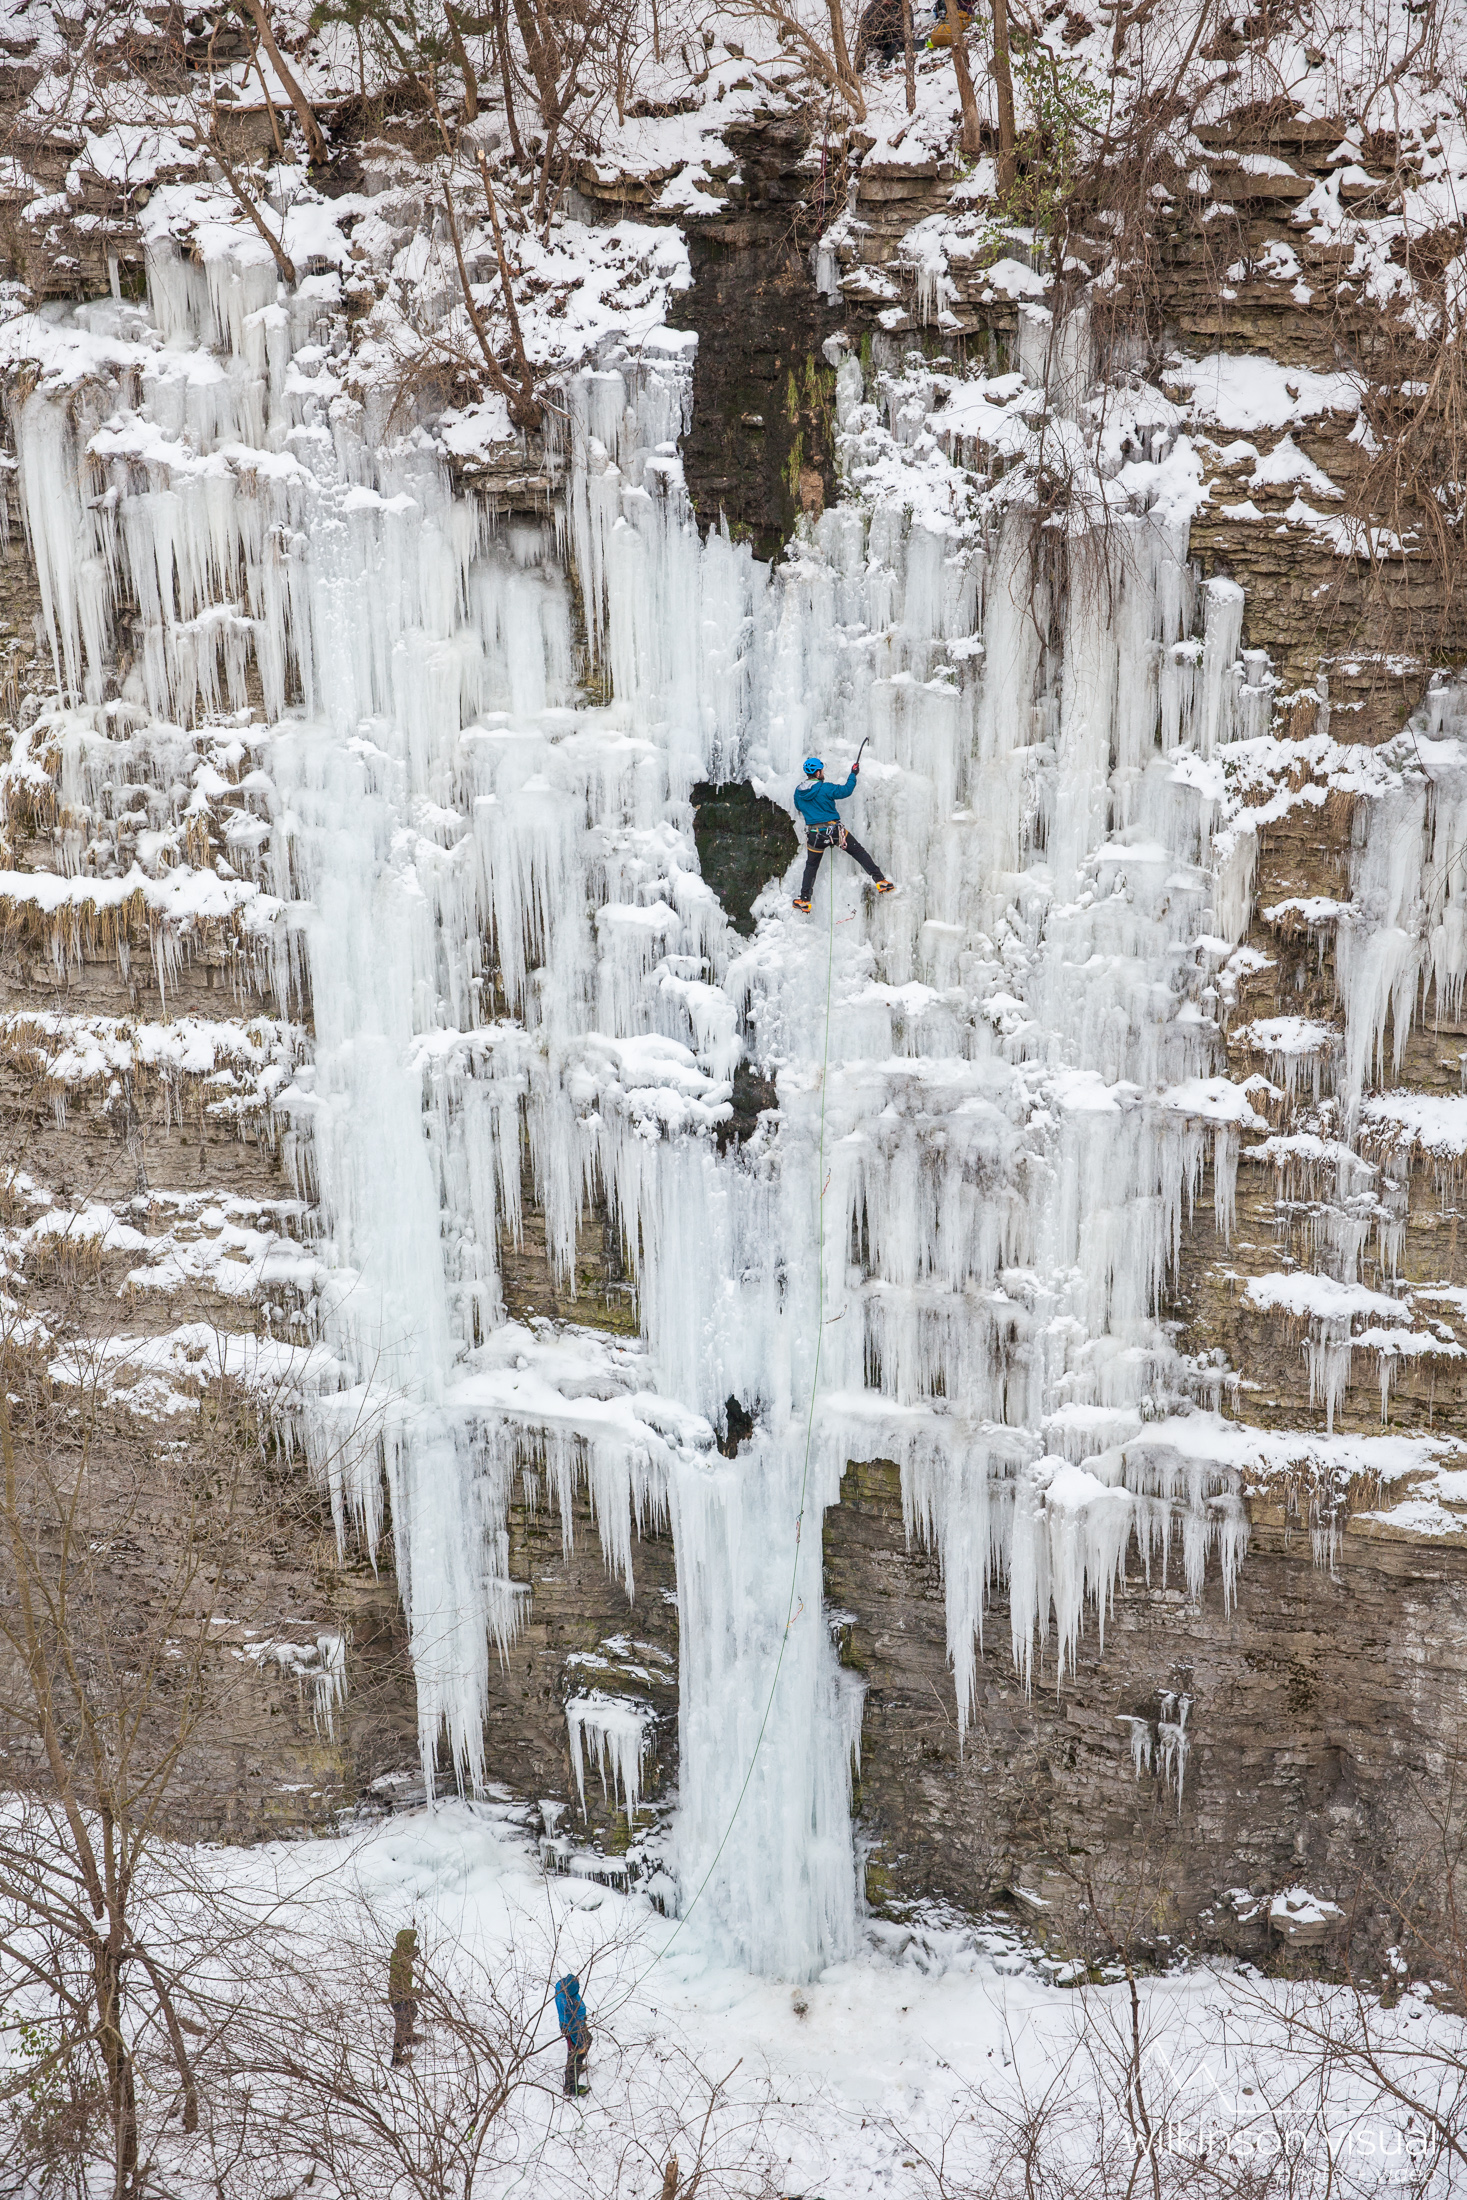 Heath Rowland makes an FA on a rare ice formation in Central Kentucky.